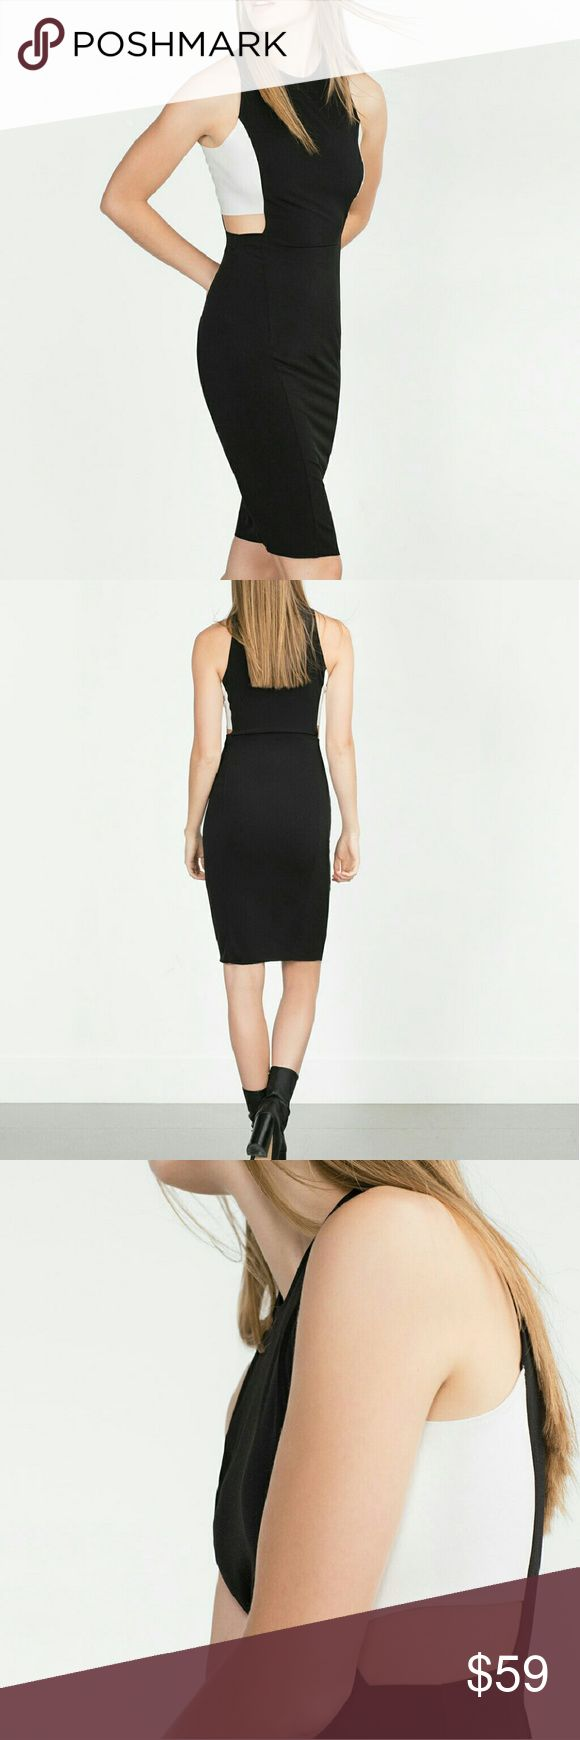 Weekend sale! (Lowest price) Zara dress Super sexy. Side cut out brand new  Reduced from $59 Zara Dresses